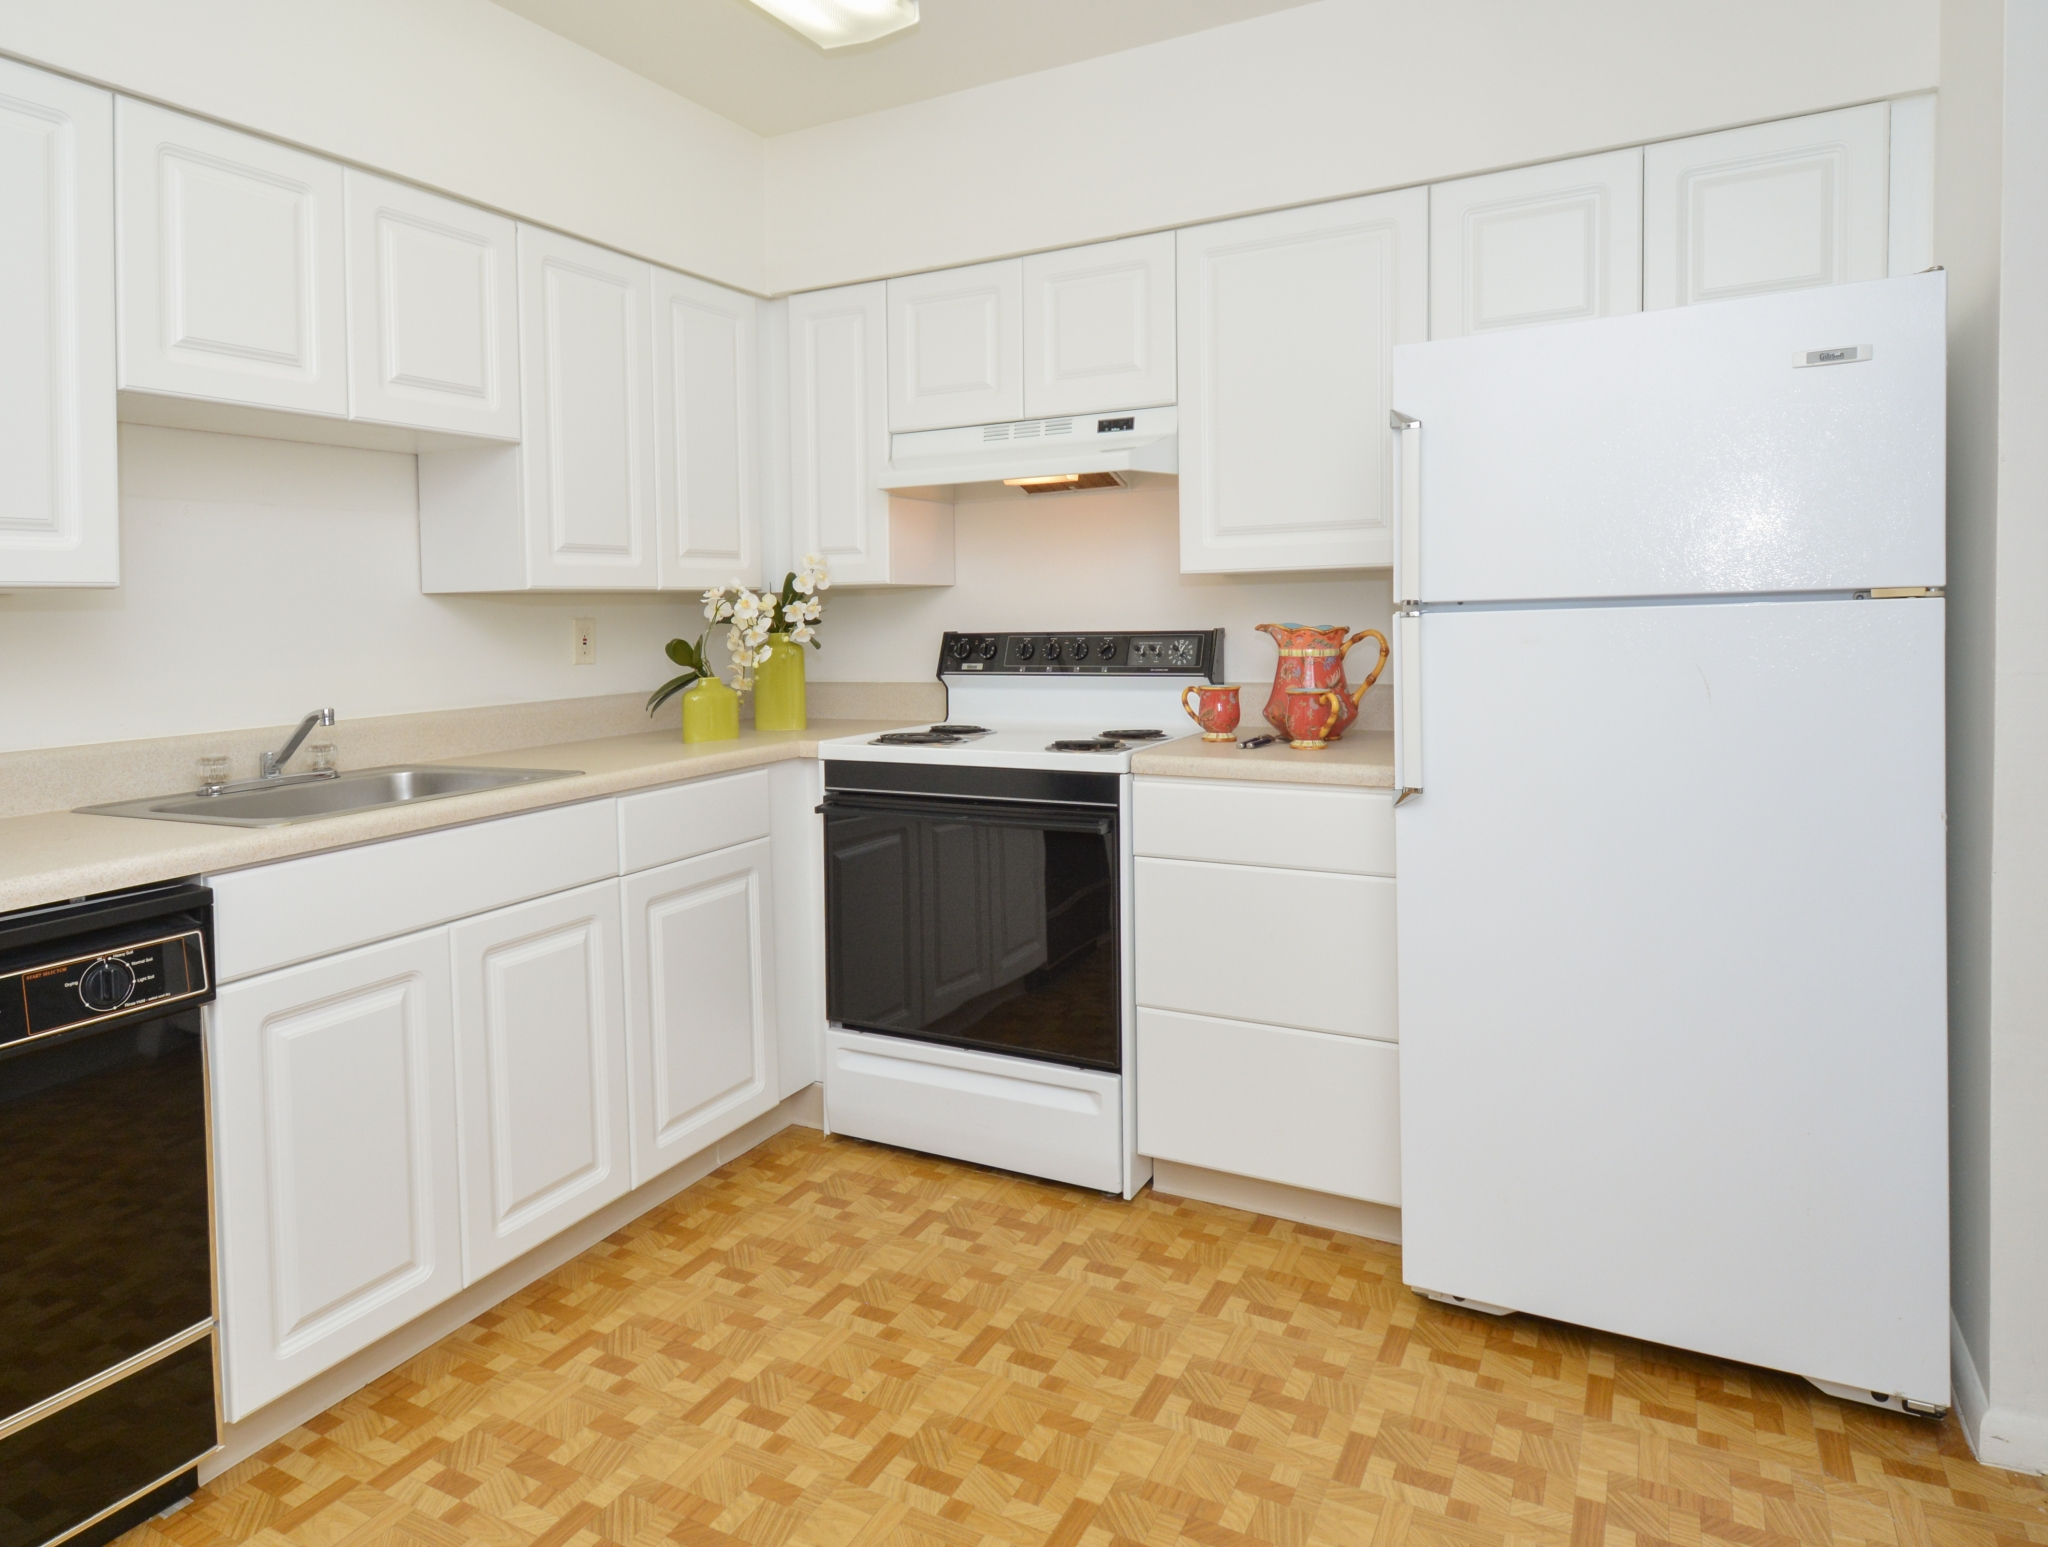 Spacious Kitchen | Apartments for rent in Lansdale, PA | Valley Stream Apartments